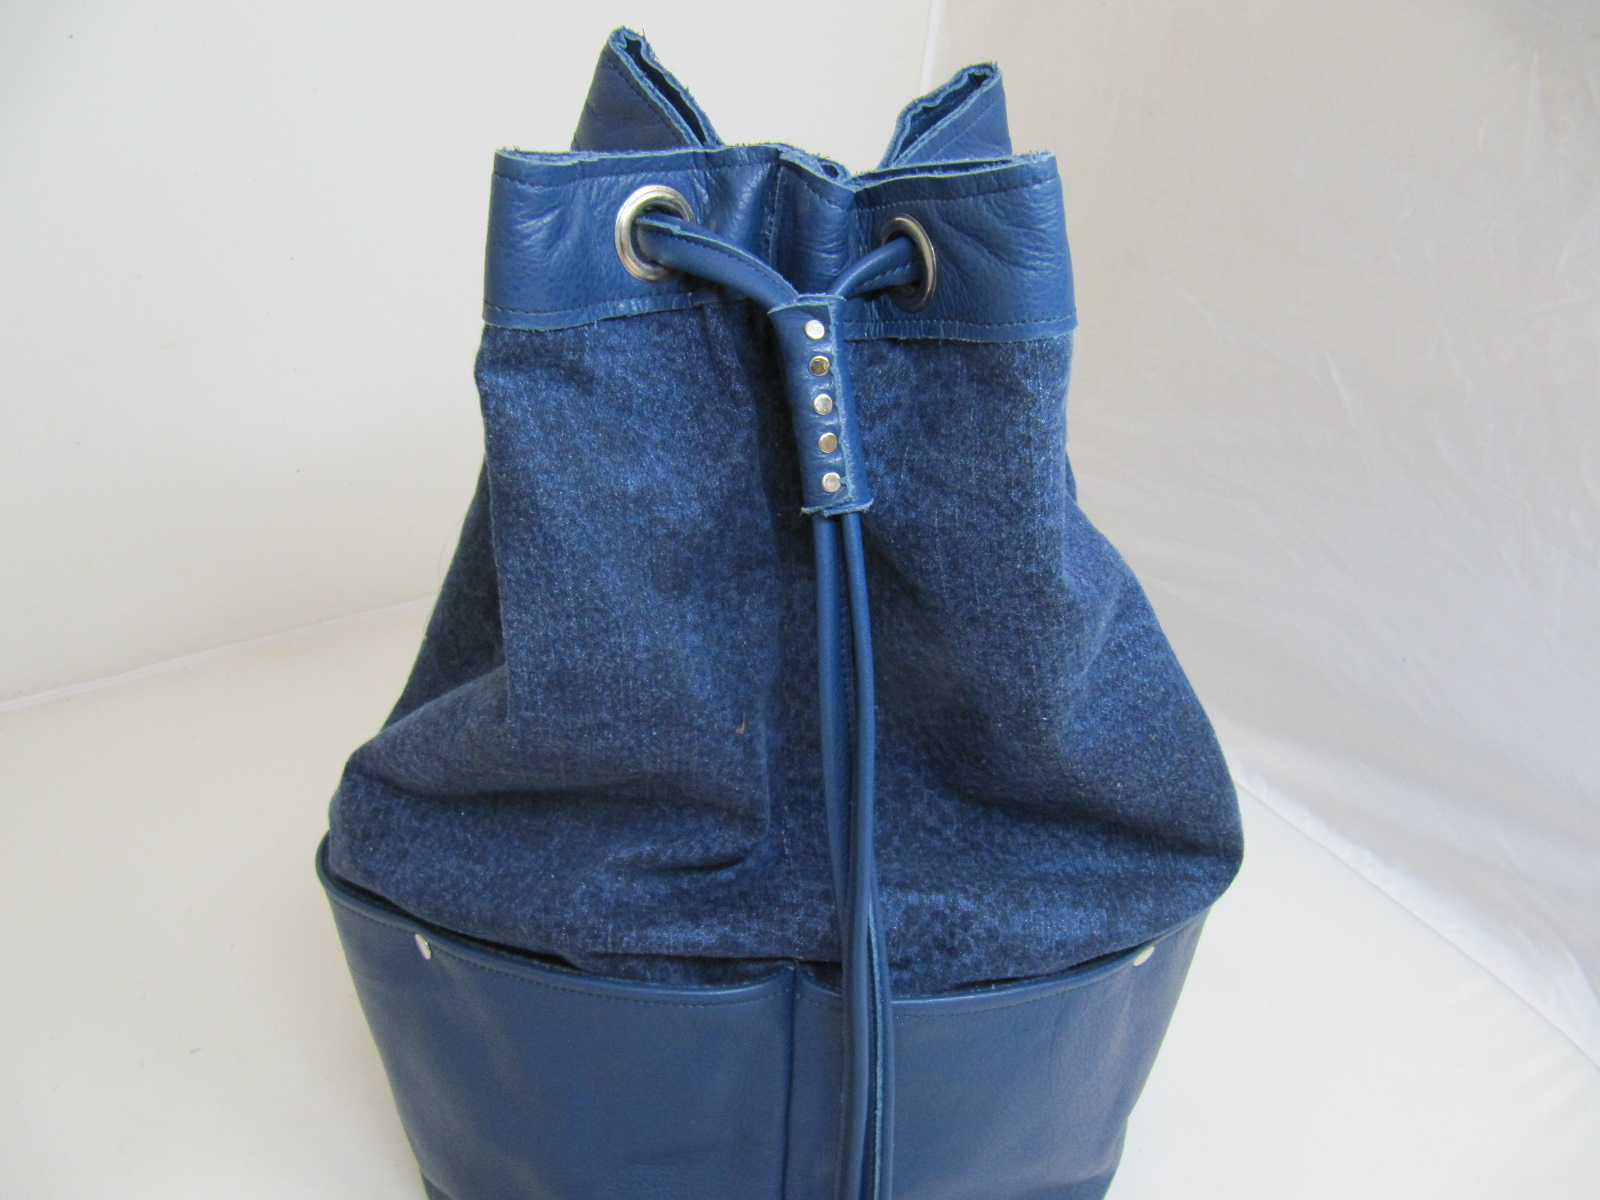 Denim and blue leather duffle bag